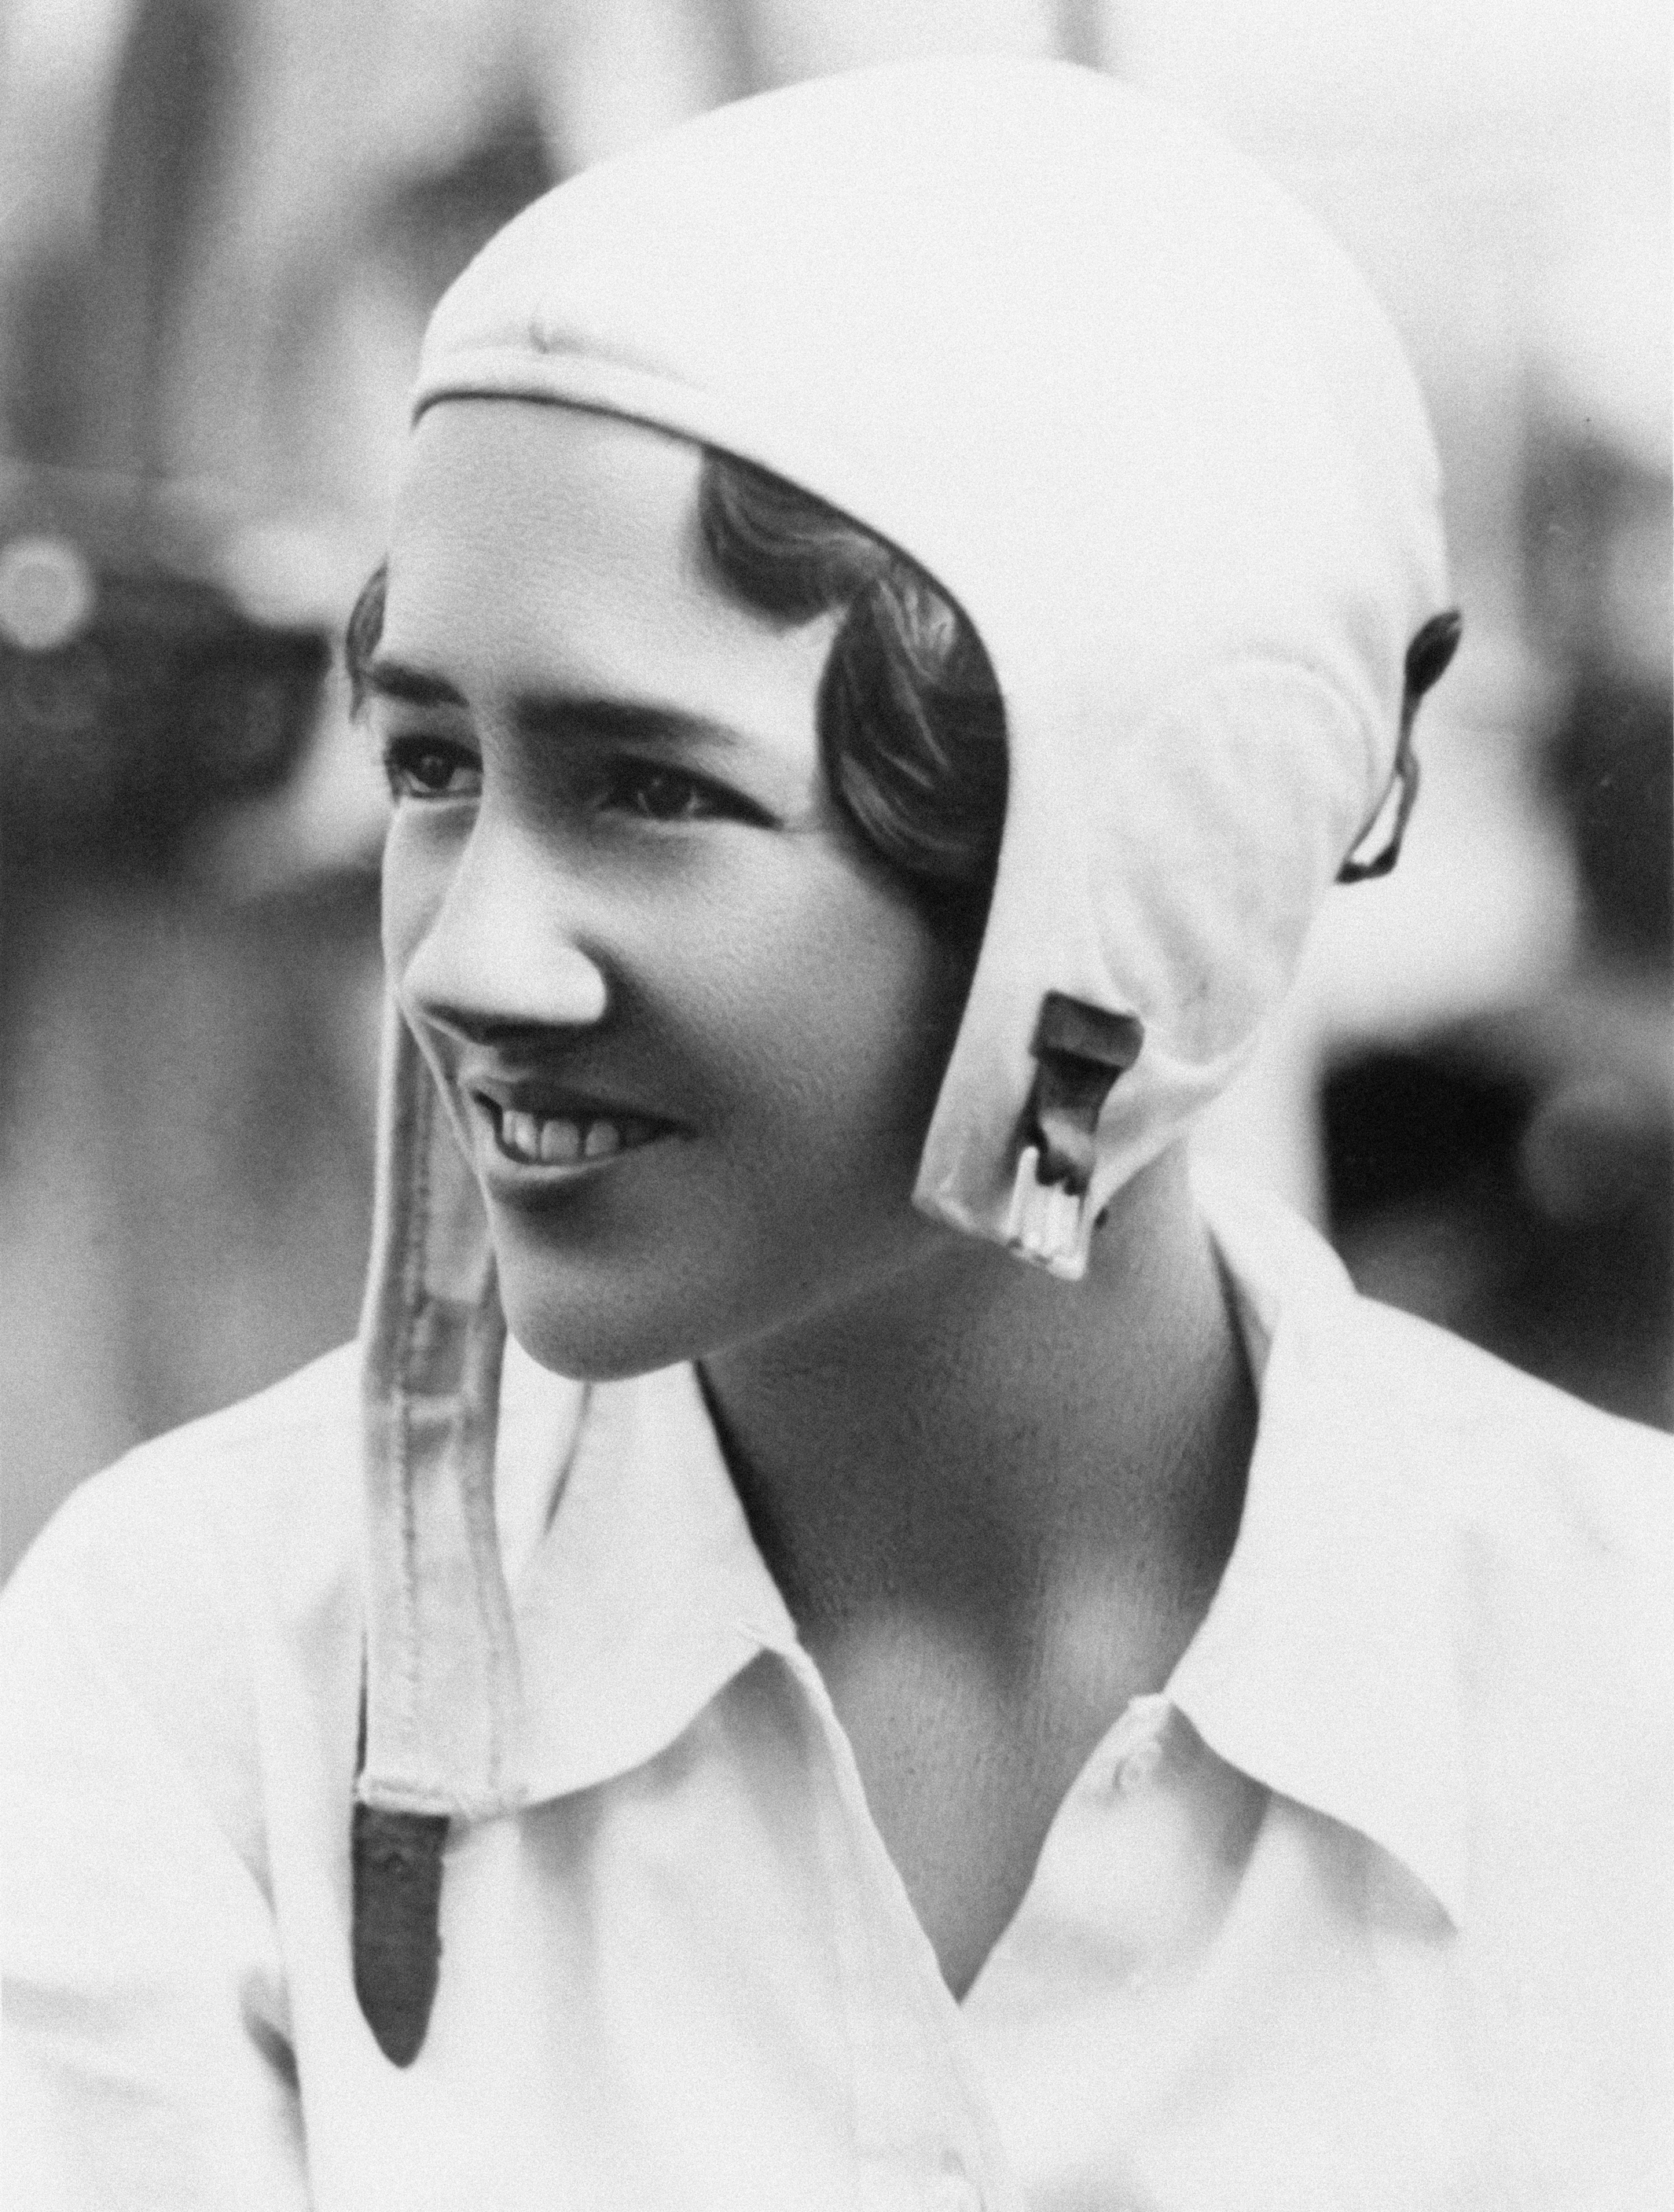 Anne Morrow Lindbergh poses in a leather aviators cap